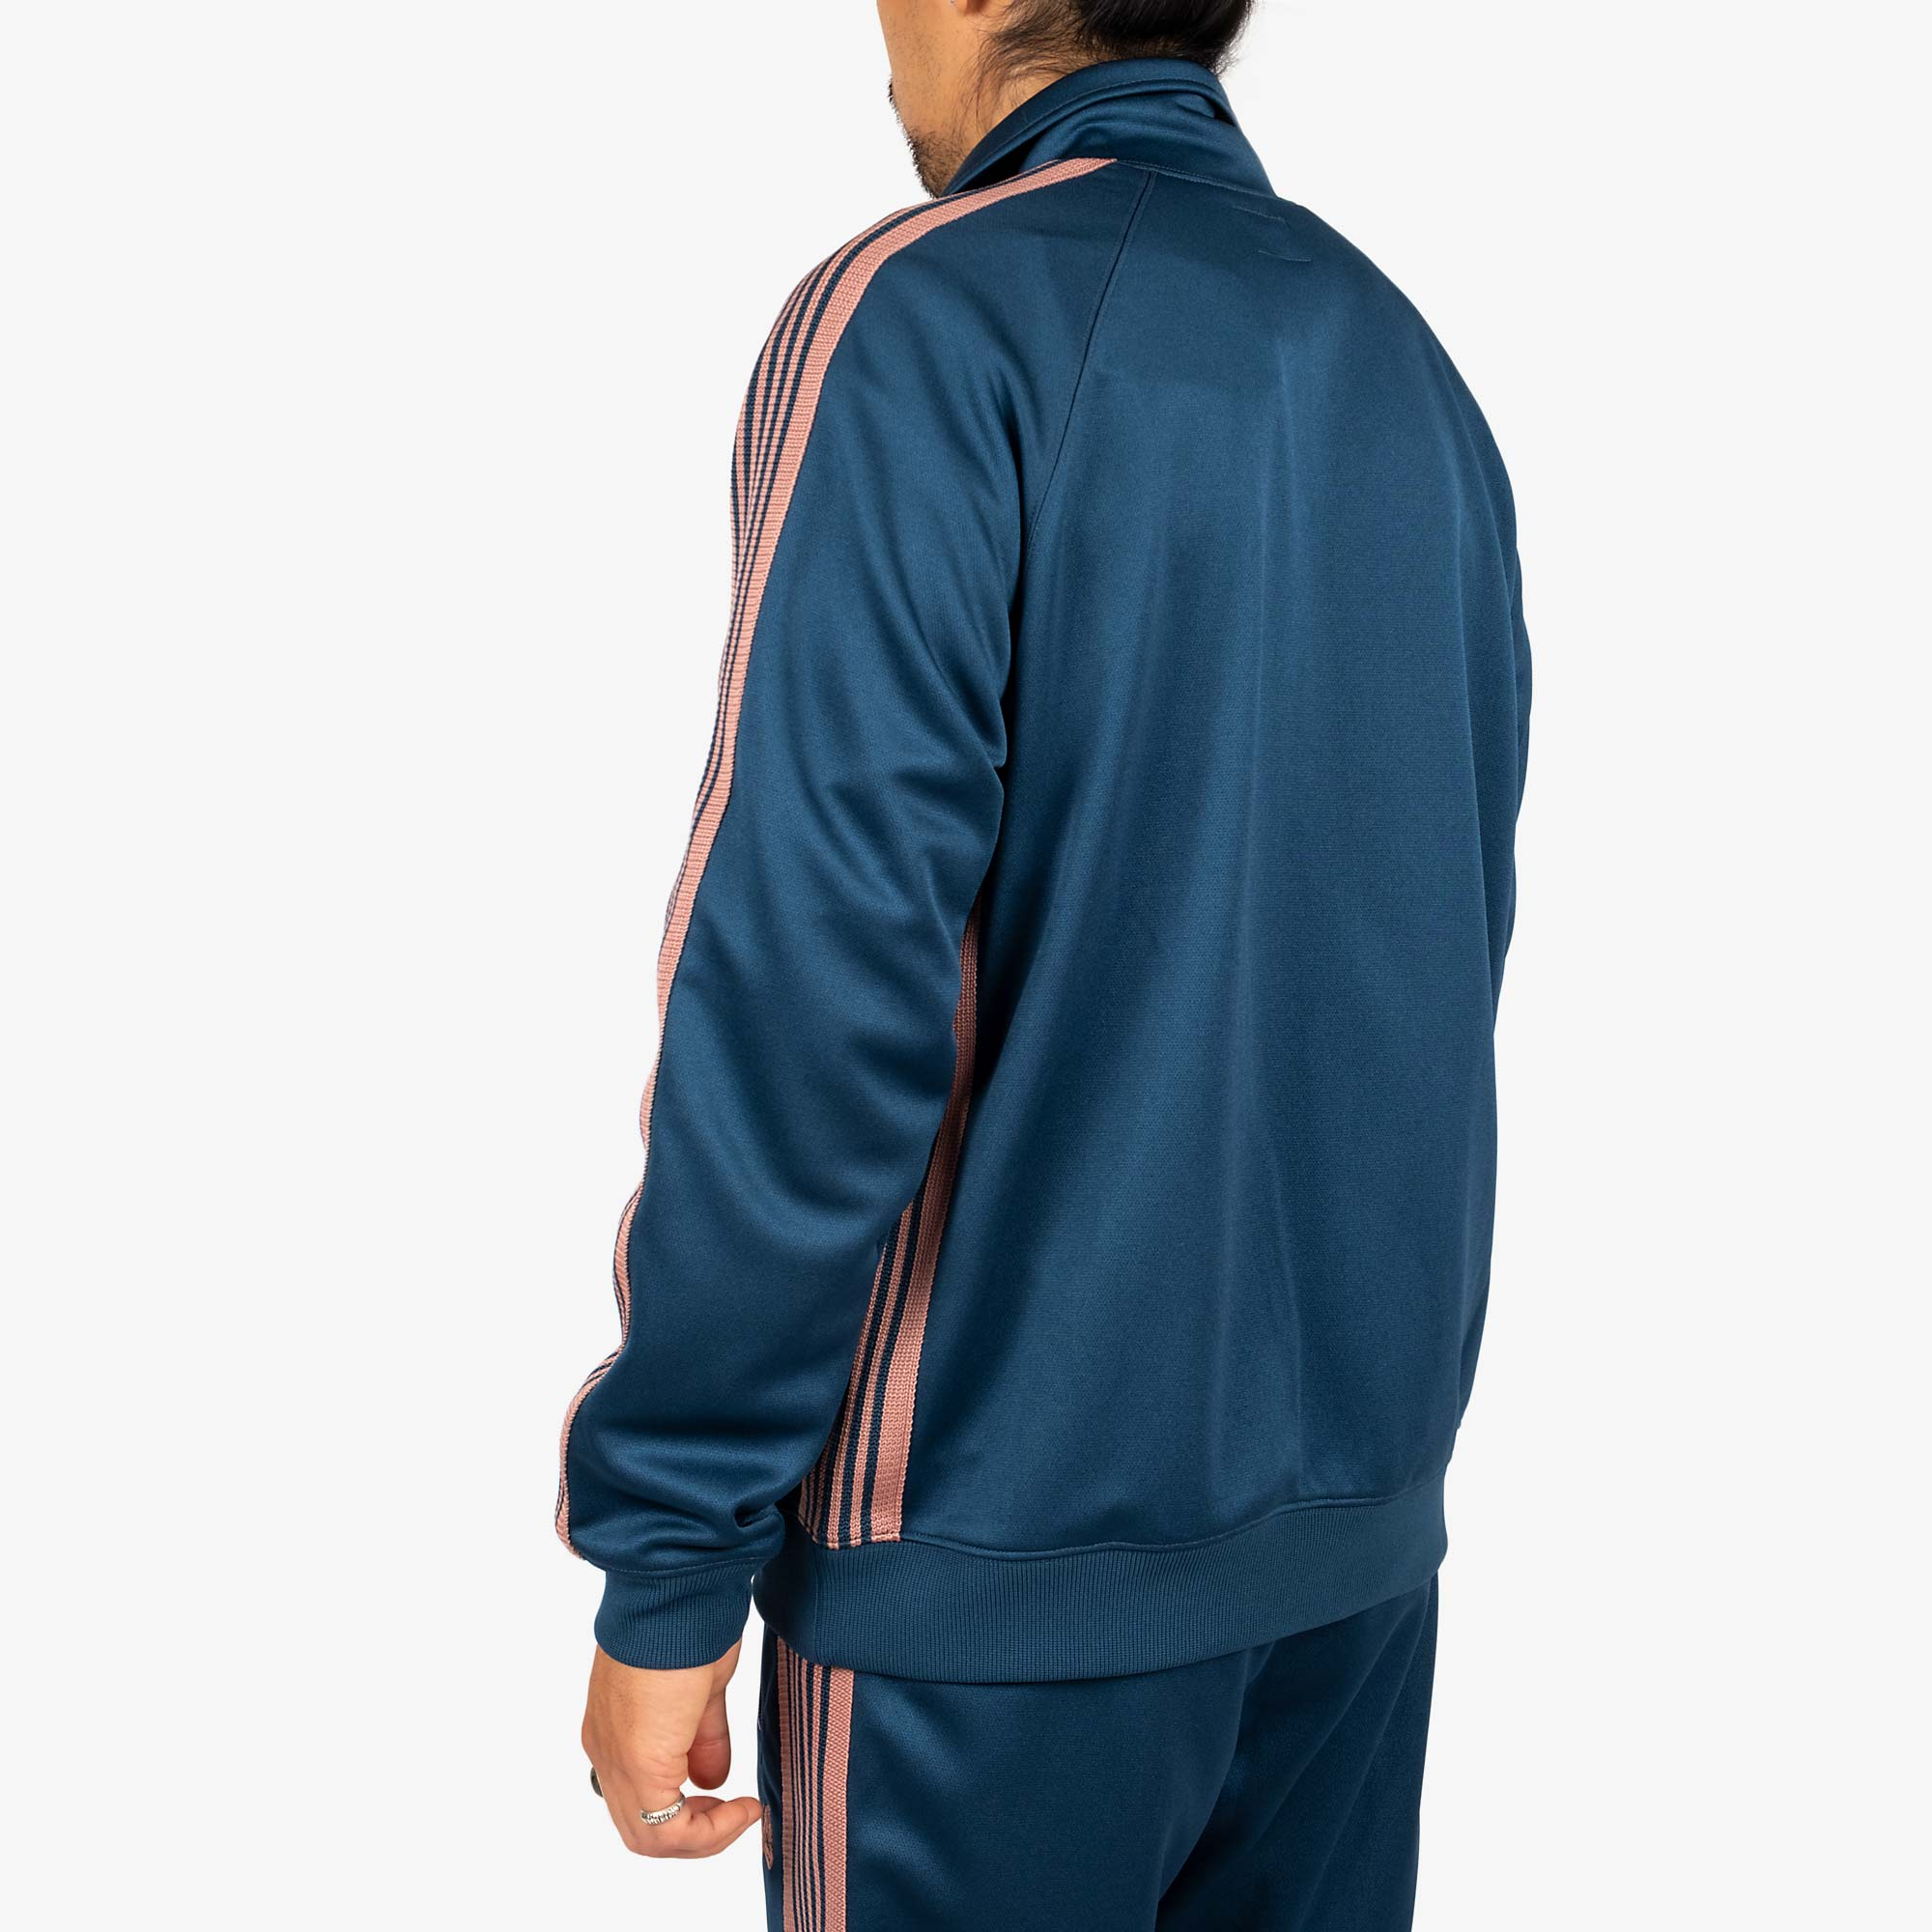 Needles M' Track Jacket - Poly Smooth Teal Green 8